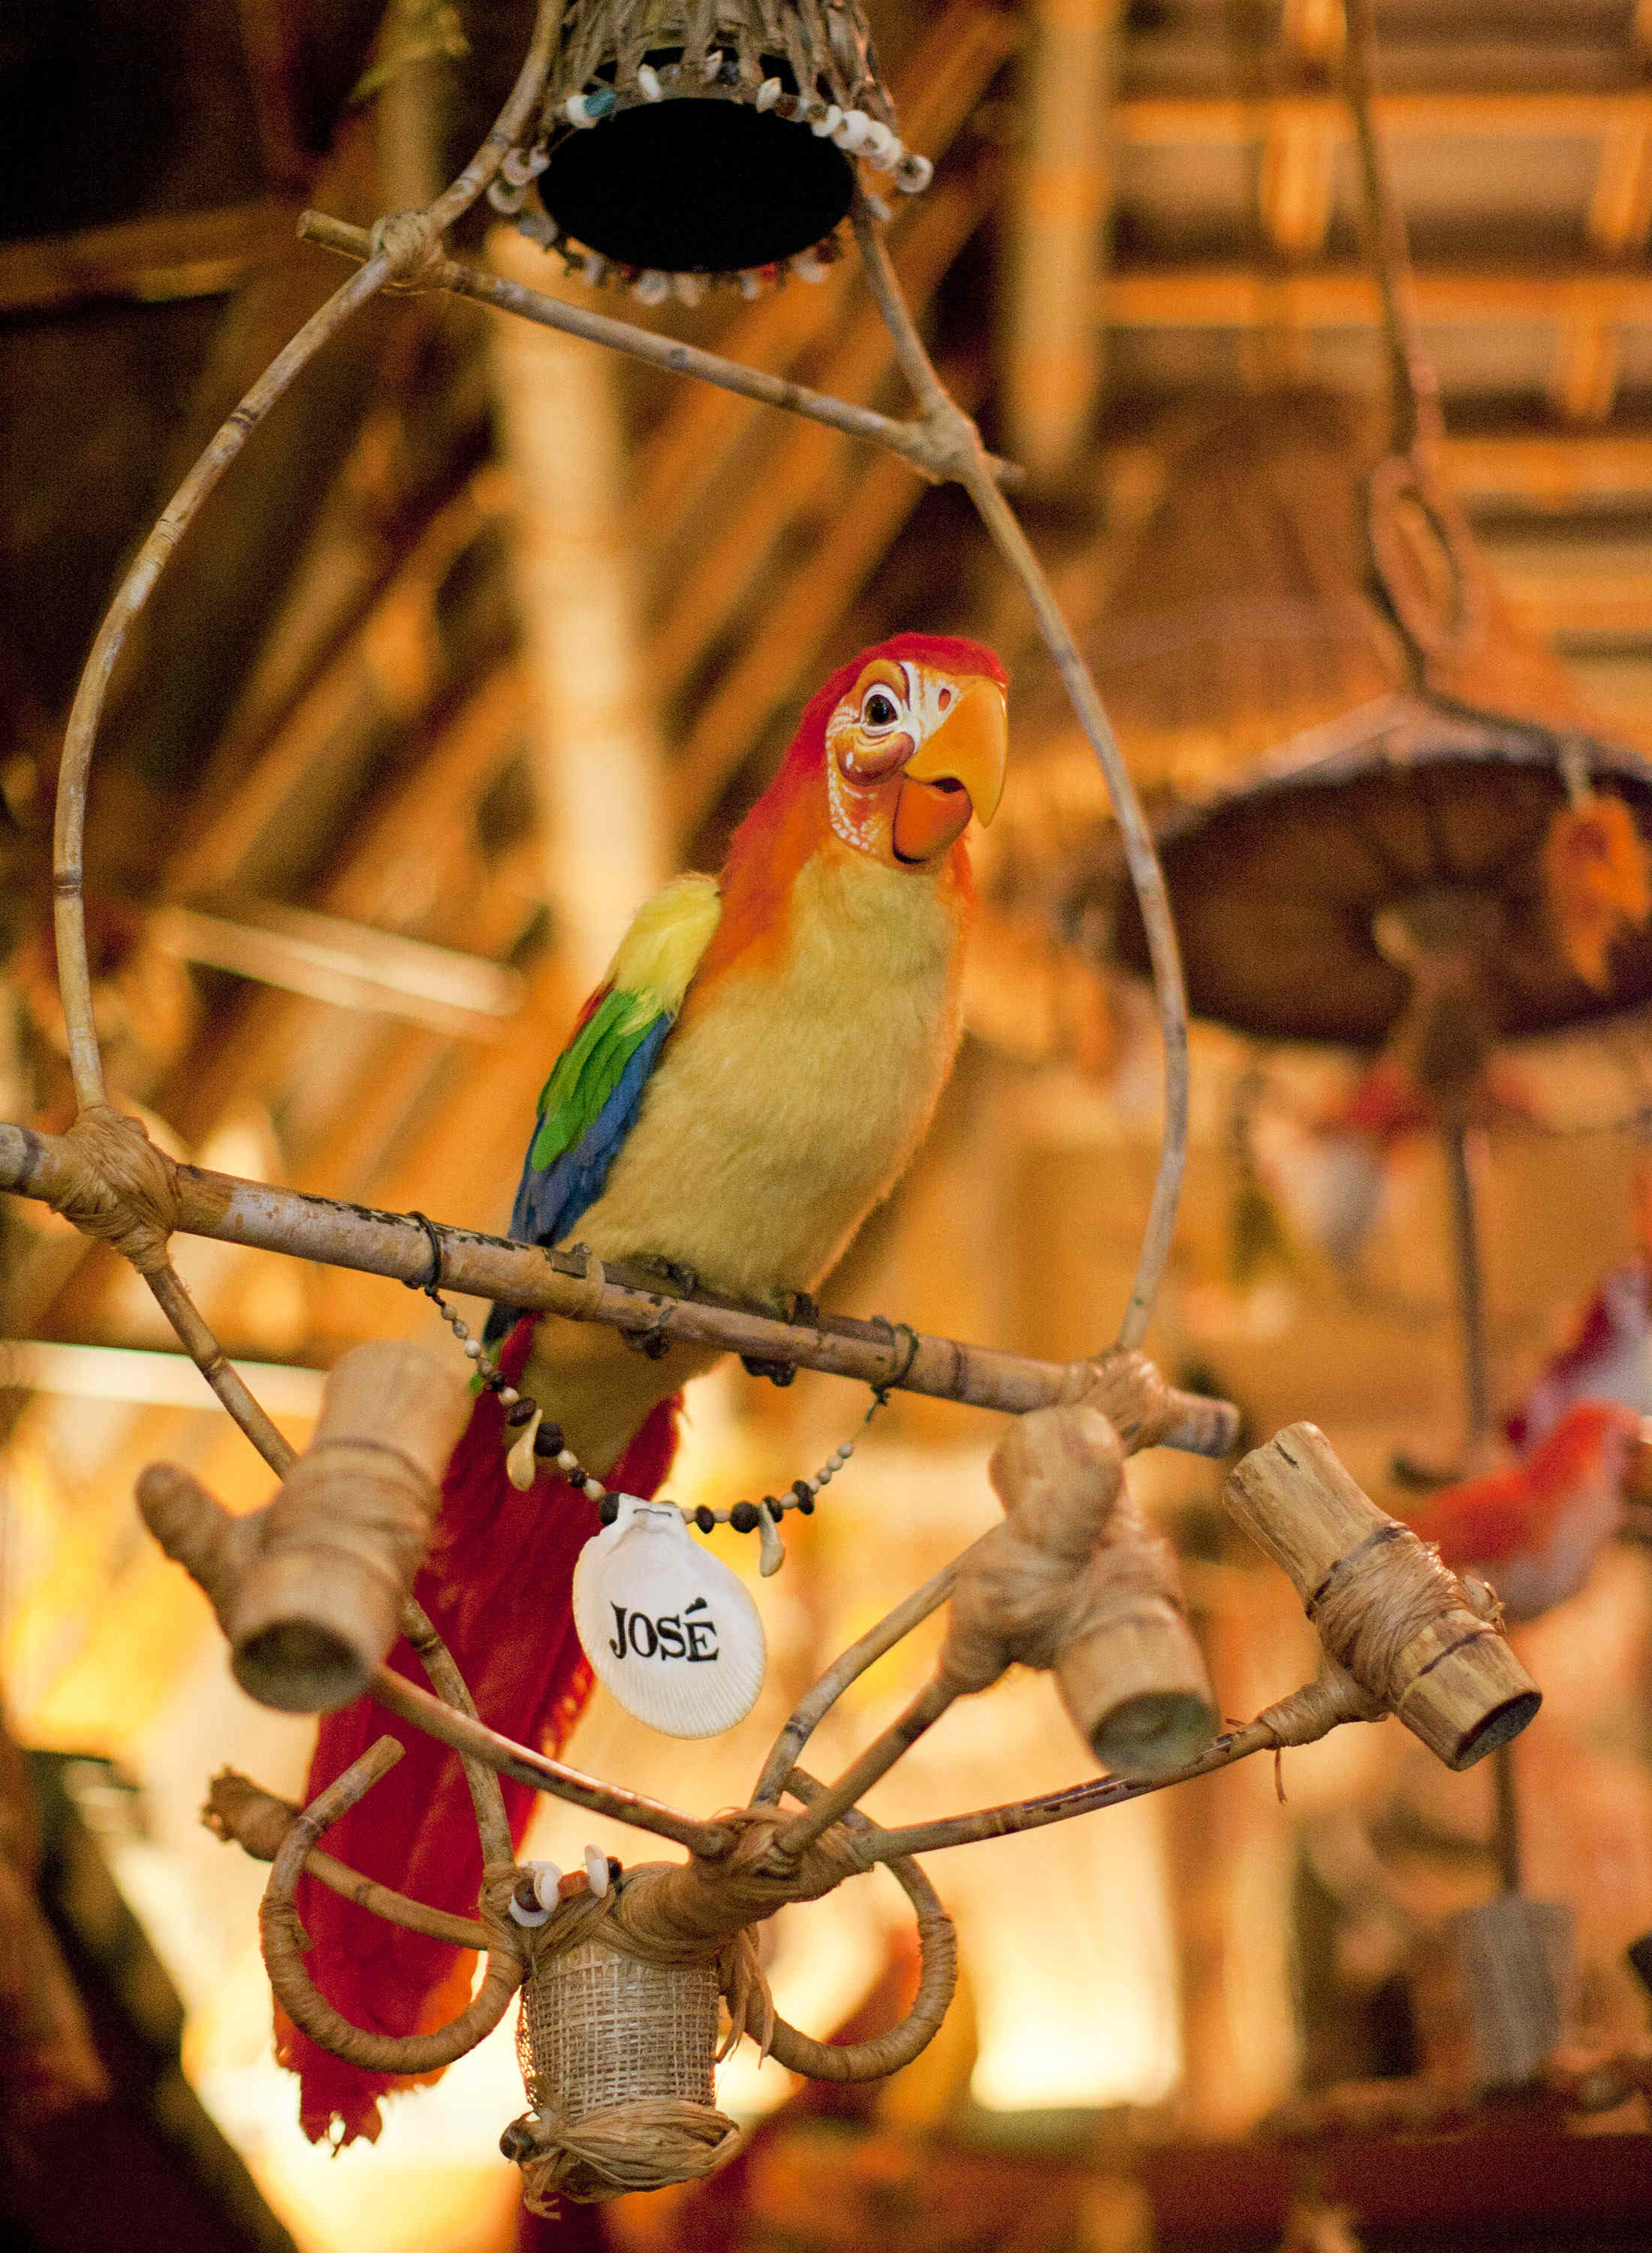 walt disney s enchanted tiki room celebrates more than 55 years rh disneylandnews com Room Tiki Adventureland Gigicockatoo Tiki Room Pierre